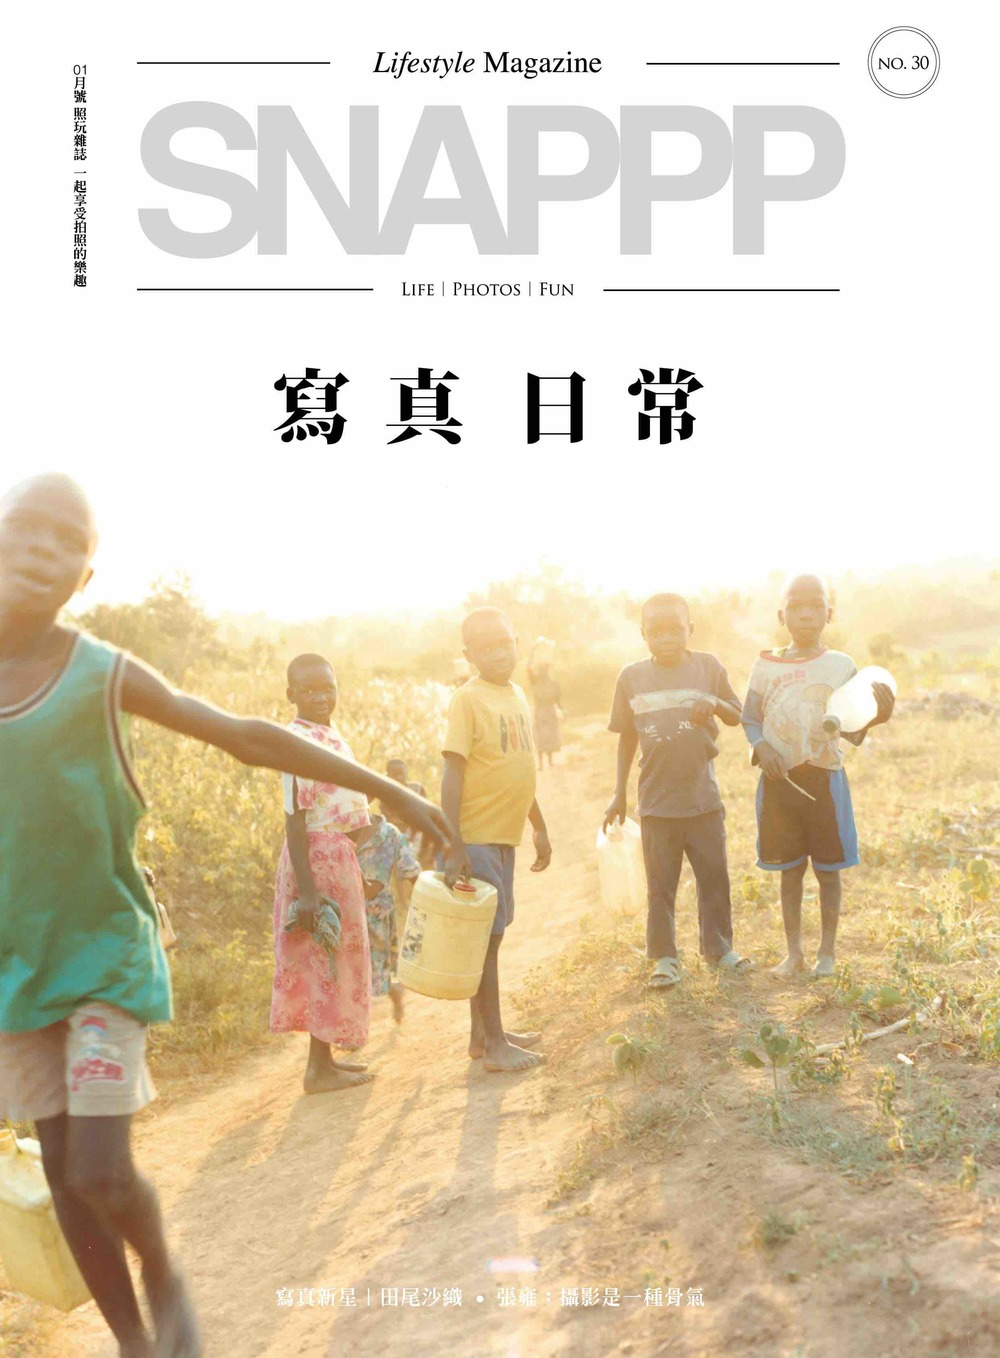 SNAPPP-NO30 COVER-ver1.jpg